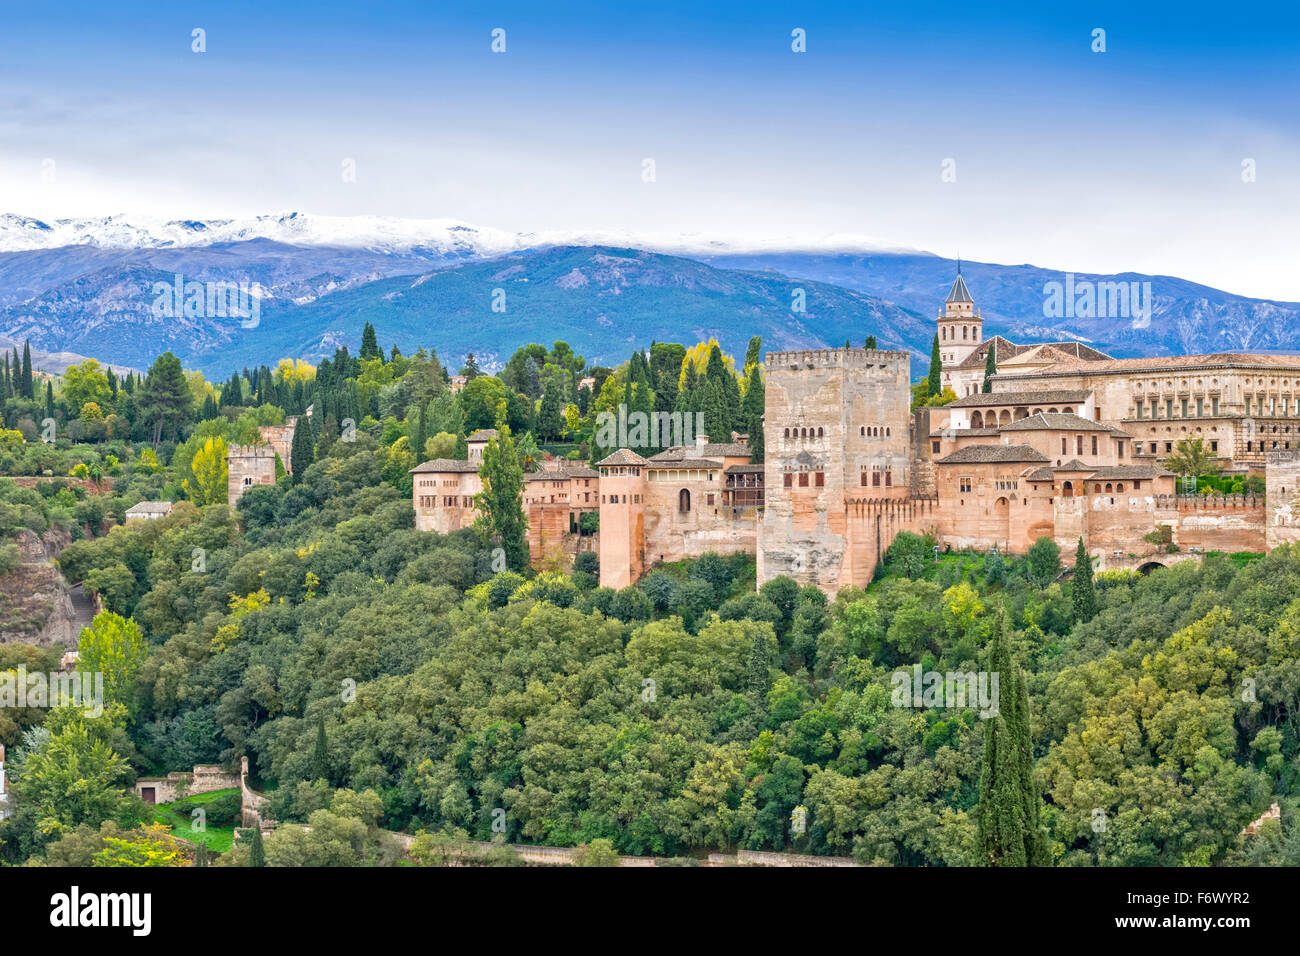 GRANADA SPAIN THE ALHAMBRA A MOORISH CITADEL AND PALACE IN AUTUMN WITH SNOW ON THE SIERRA NEVADA MOUNTAINS - Stock Image